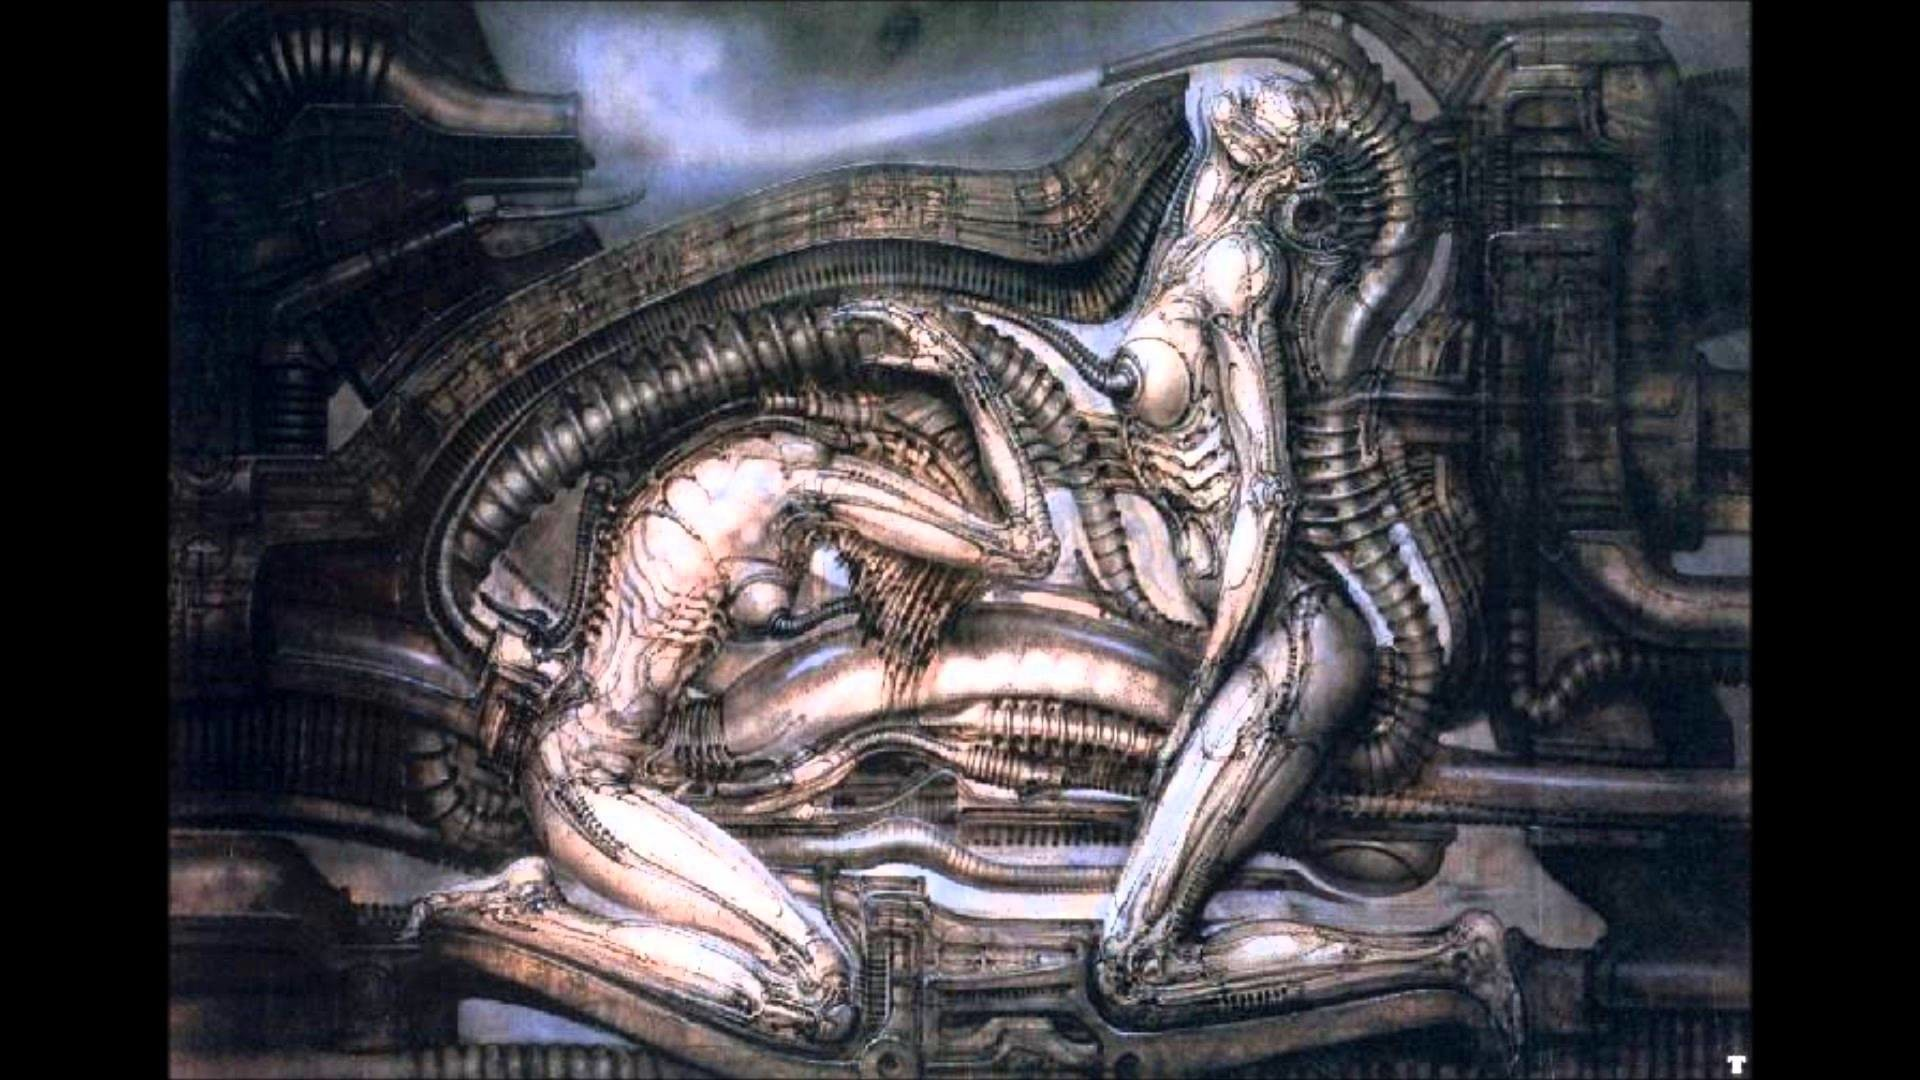 giger wallpaper hr hd - photo #9